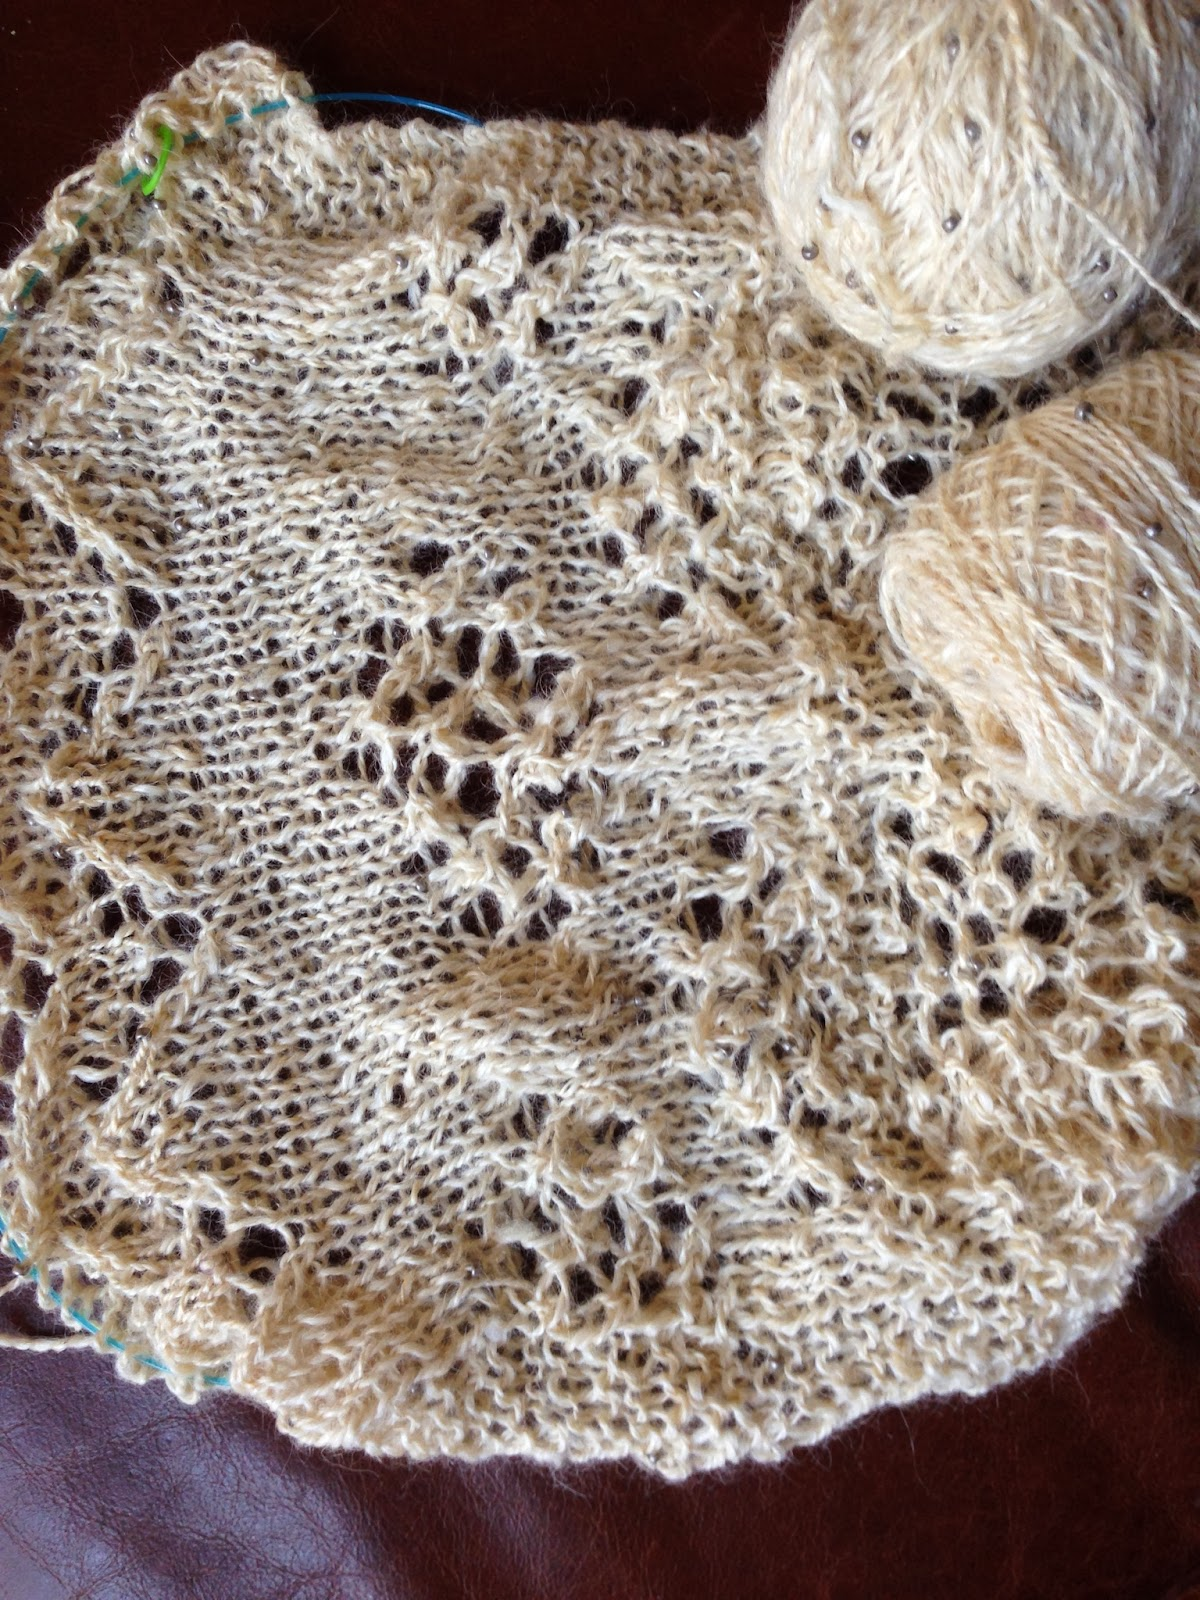 Knitting Yfwd Psso : Ewespecial knit purl slp psso